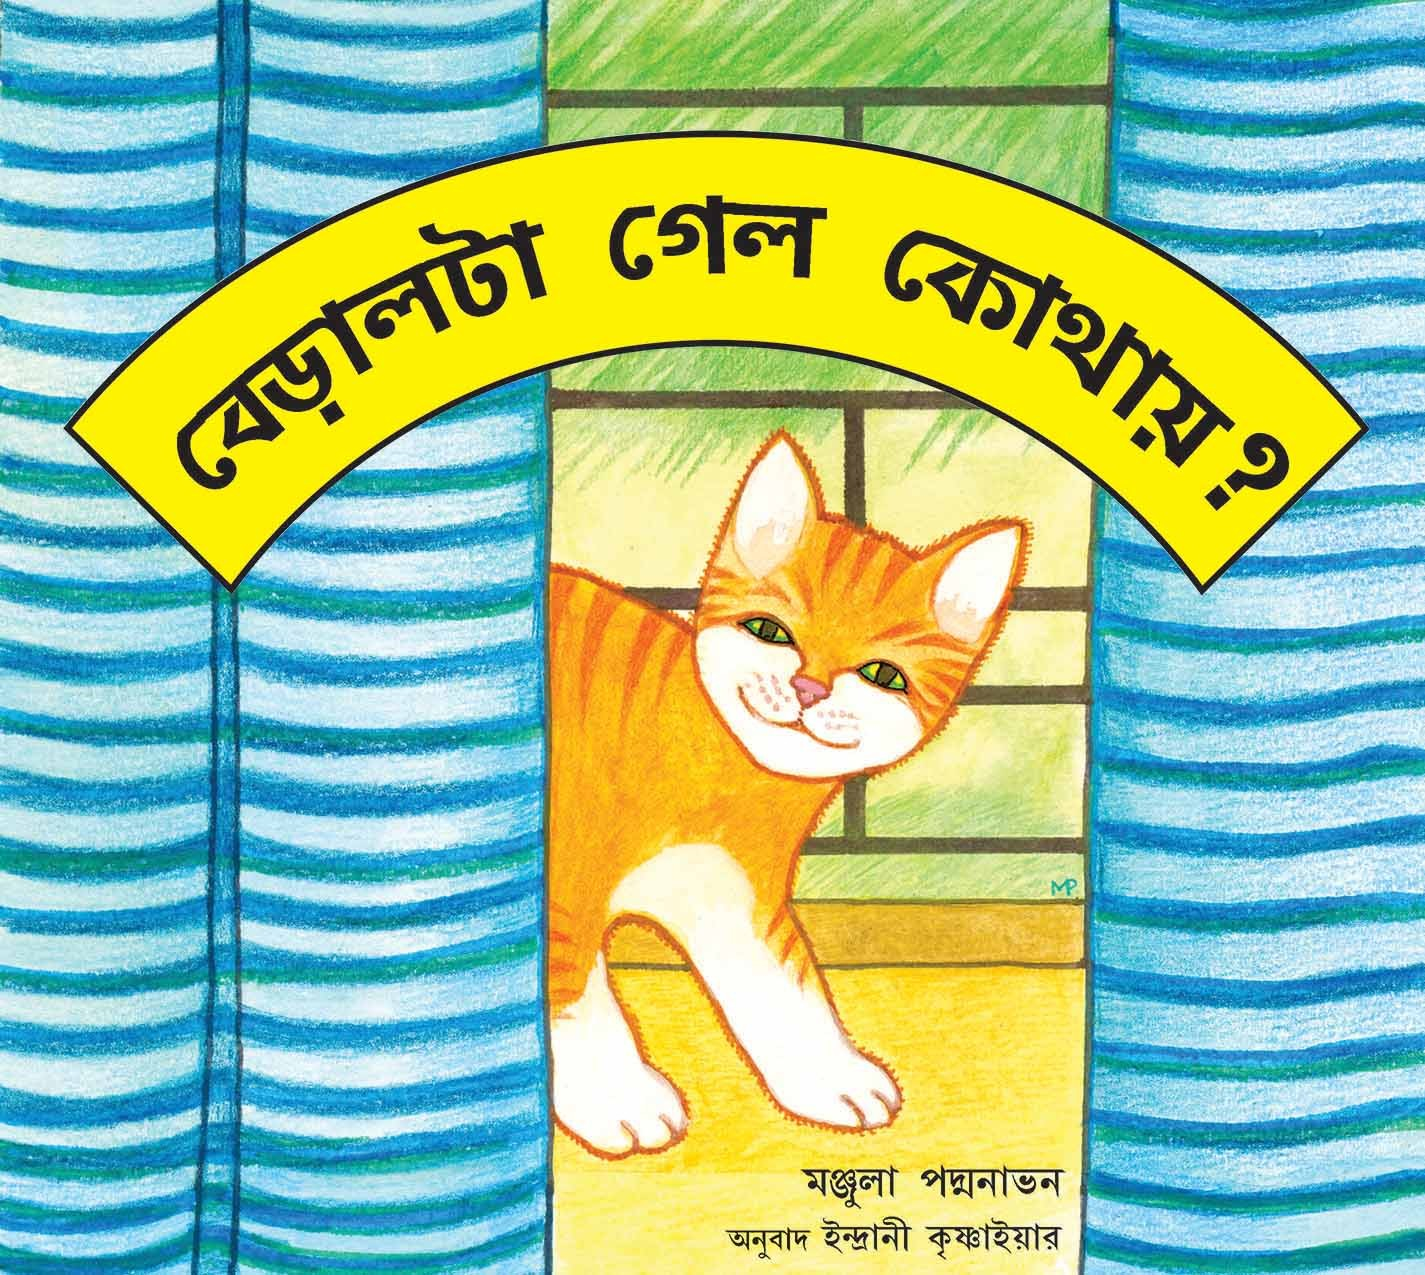 Where's That Cat?/Bedaalta Gyalo Kothaay? (Bengali)